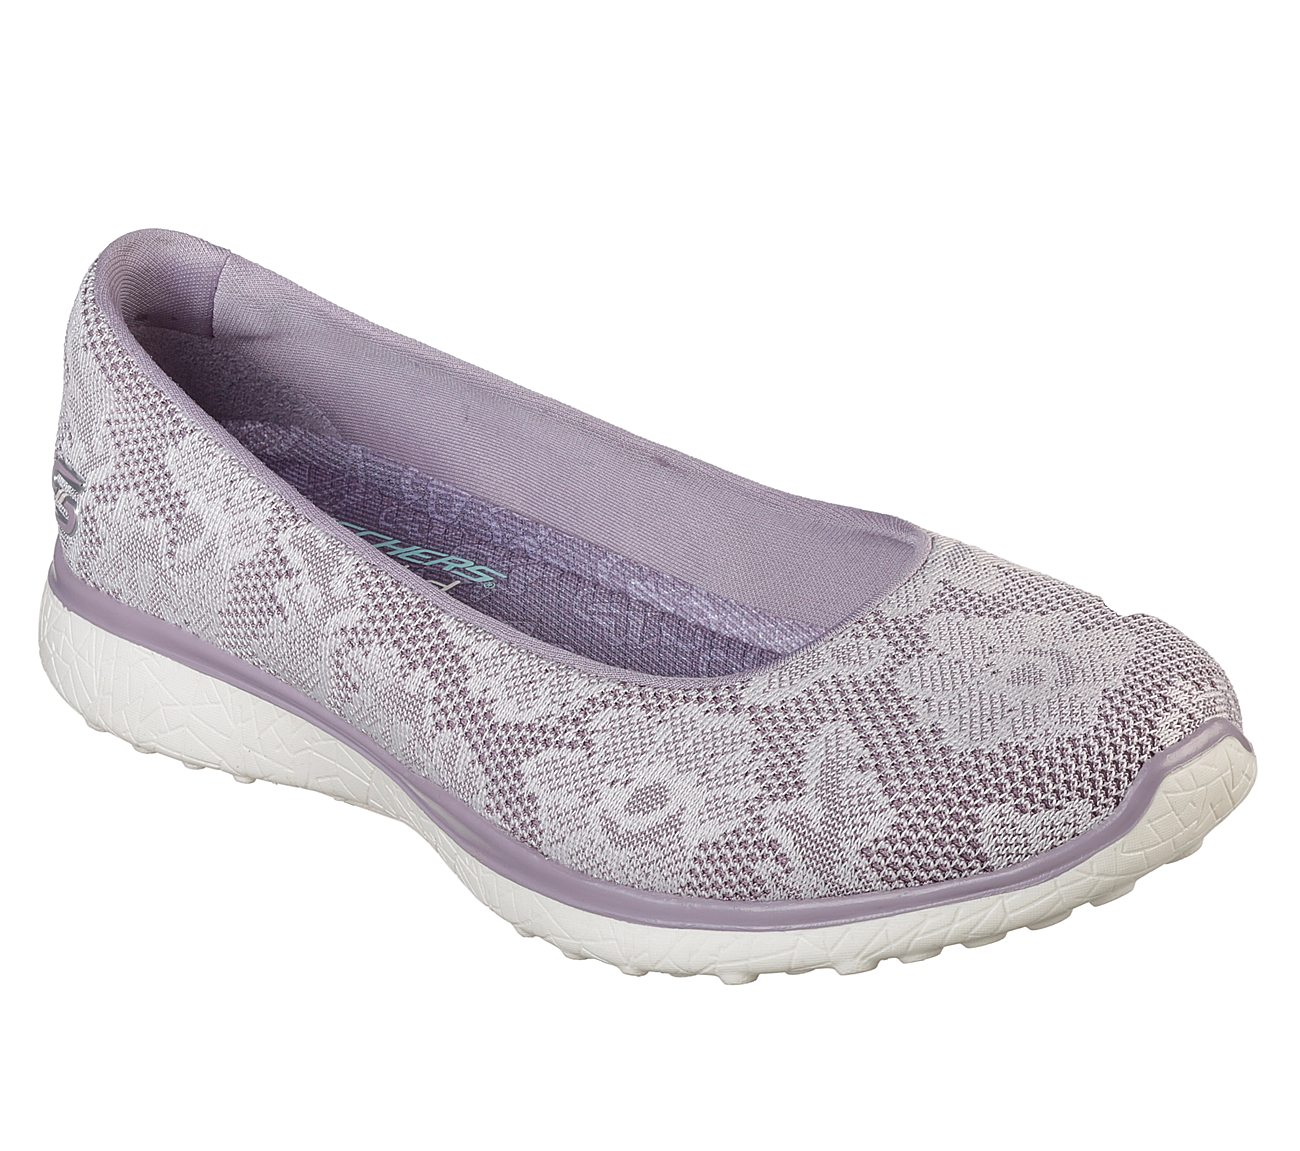 a625c2a1436 SKECHERS CHILE